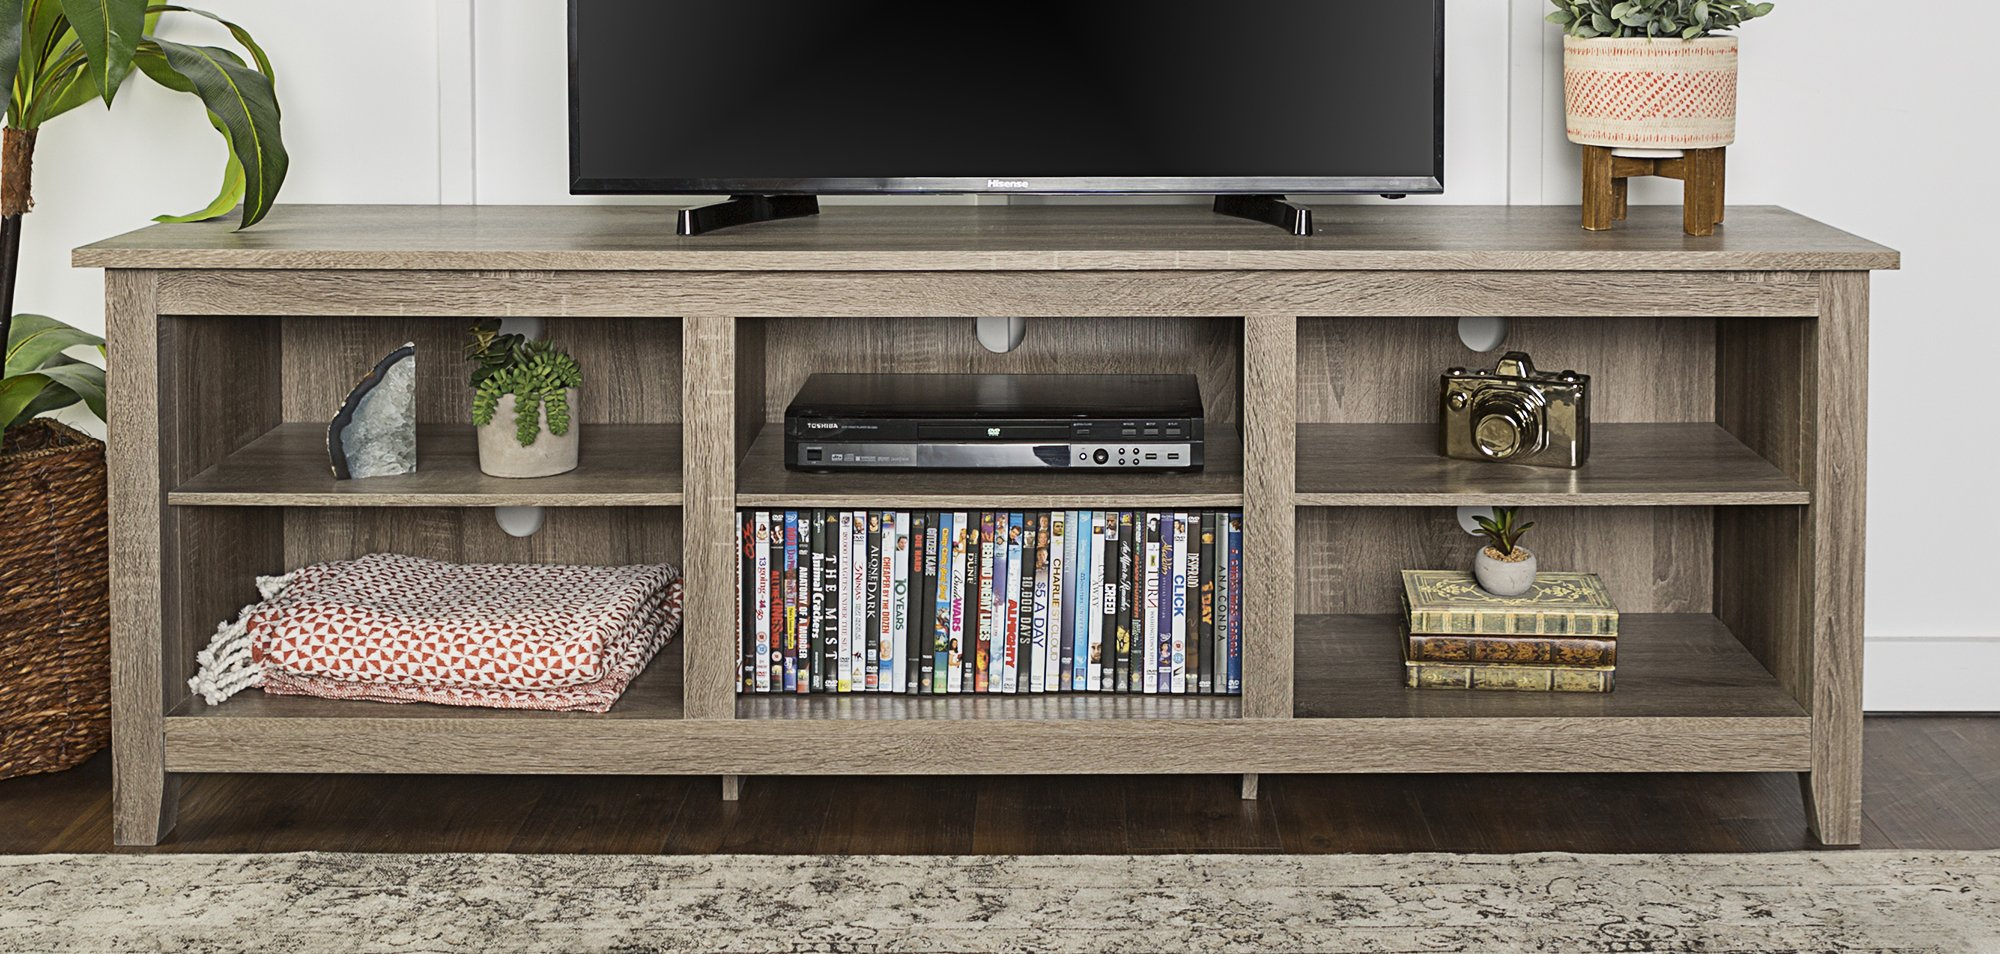 WE Furniture 70'' Wood Media TV Stand Storage Console, Driftwood